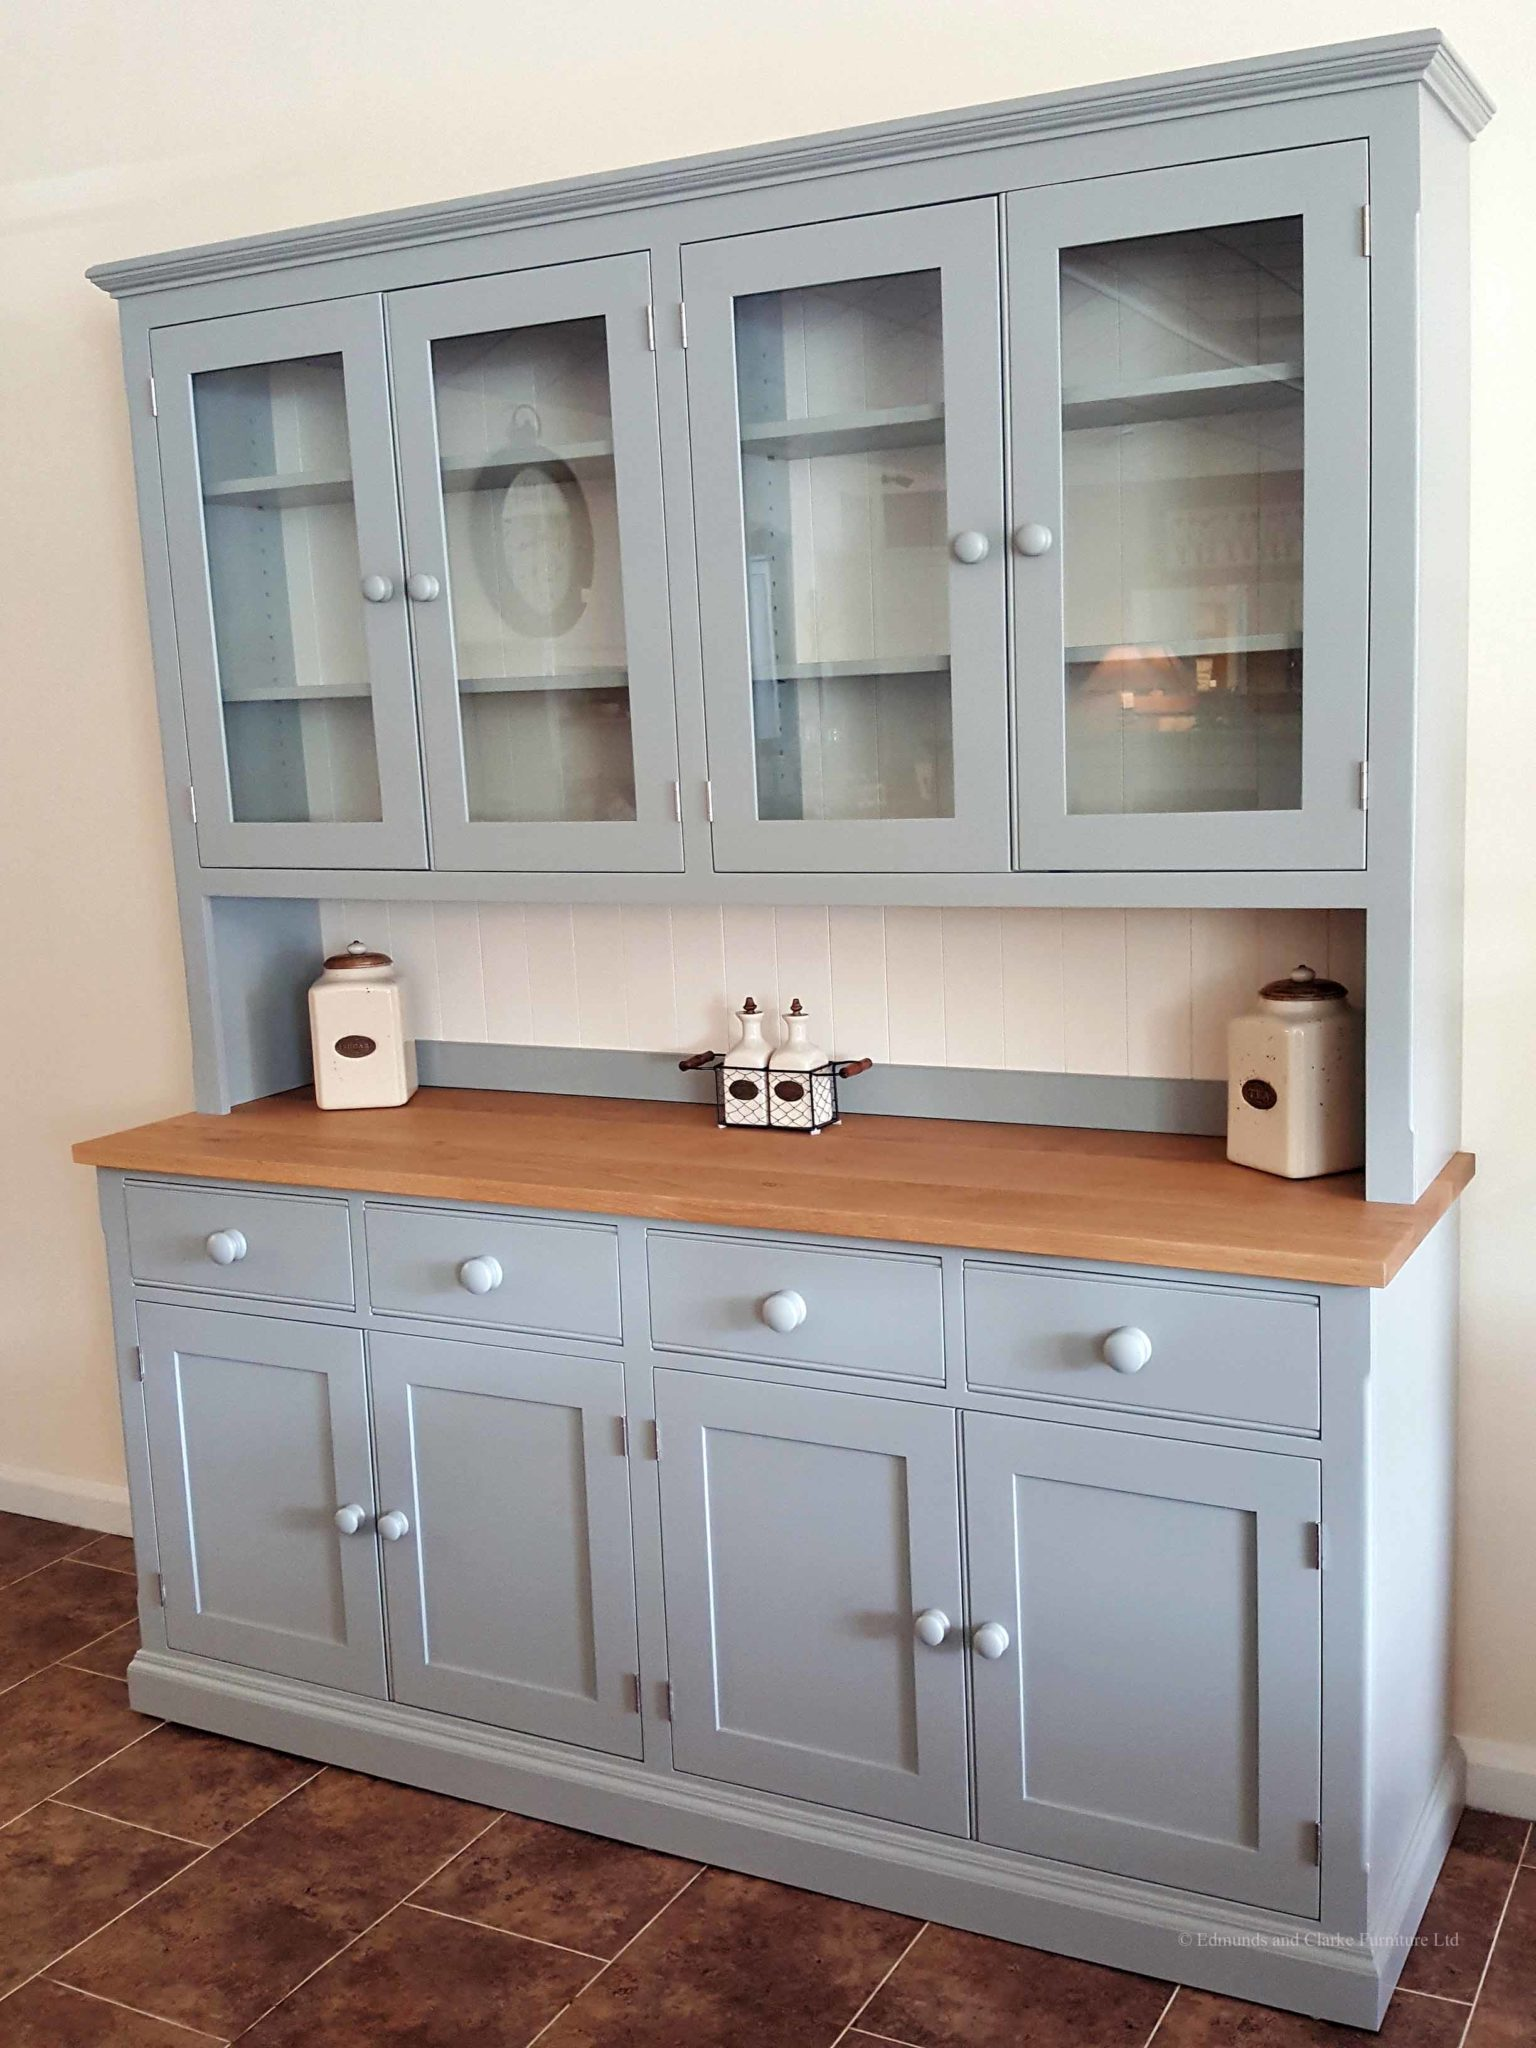 Edmunds 6'6 Painted Half Glazed Dresser. with contrasting white backboards. sideboard has square oak top with 4 drawers and 4 doors. painted knobs and all adjustable shelves. choice of handles and knobs. EDM030